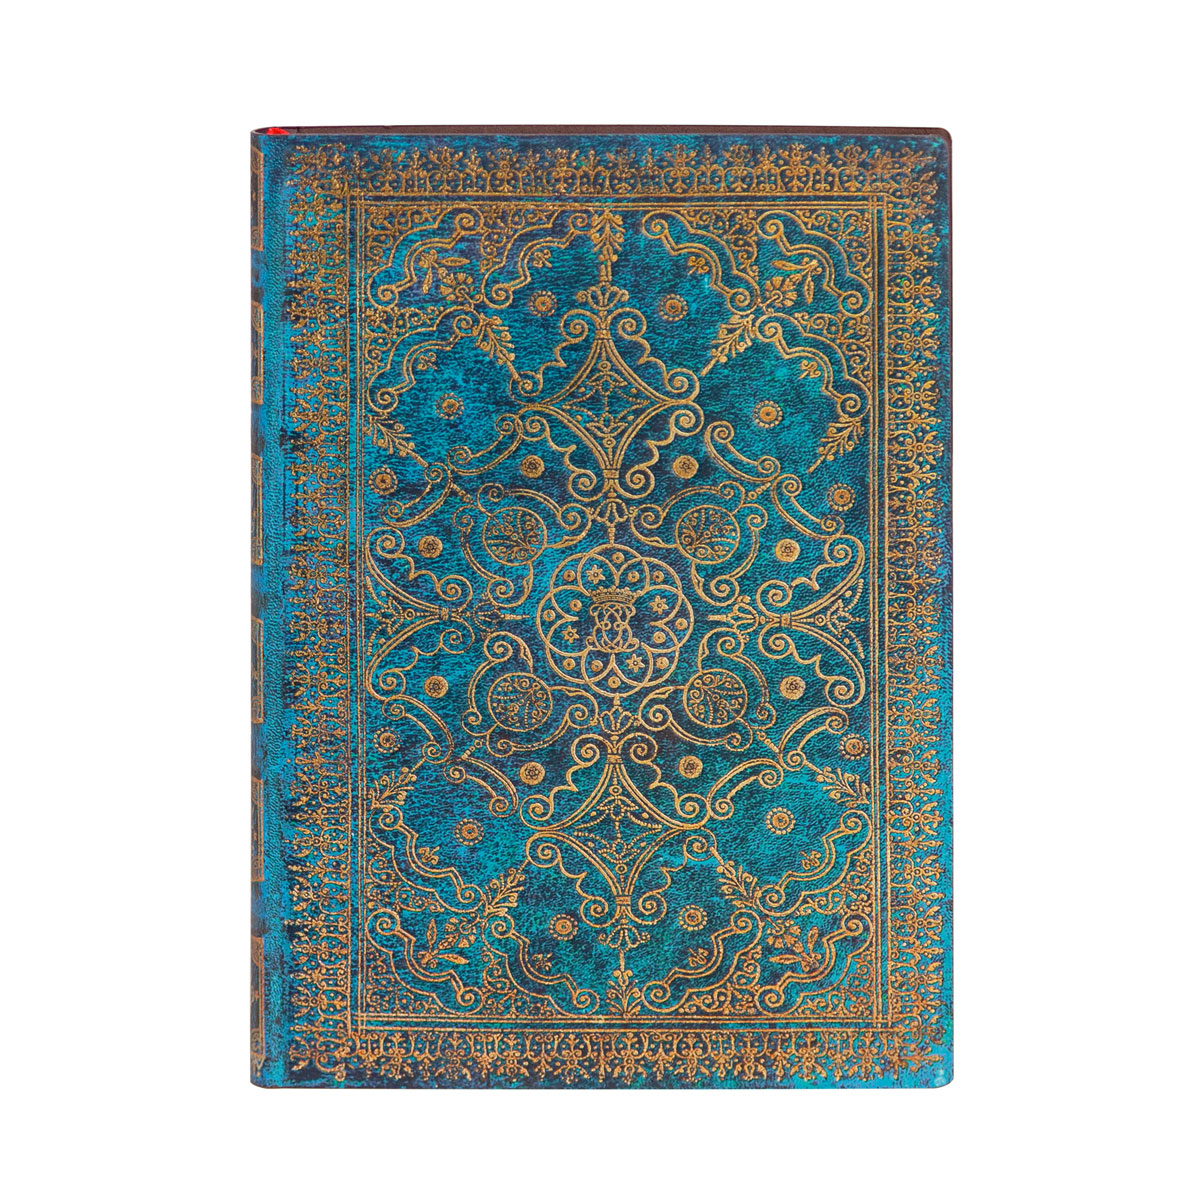 Paperblanks Flexis Equinoxe Azure Midi 5x7 inch 176 Page Journal